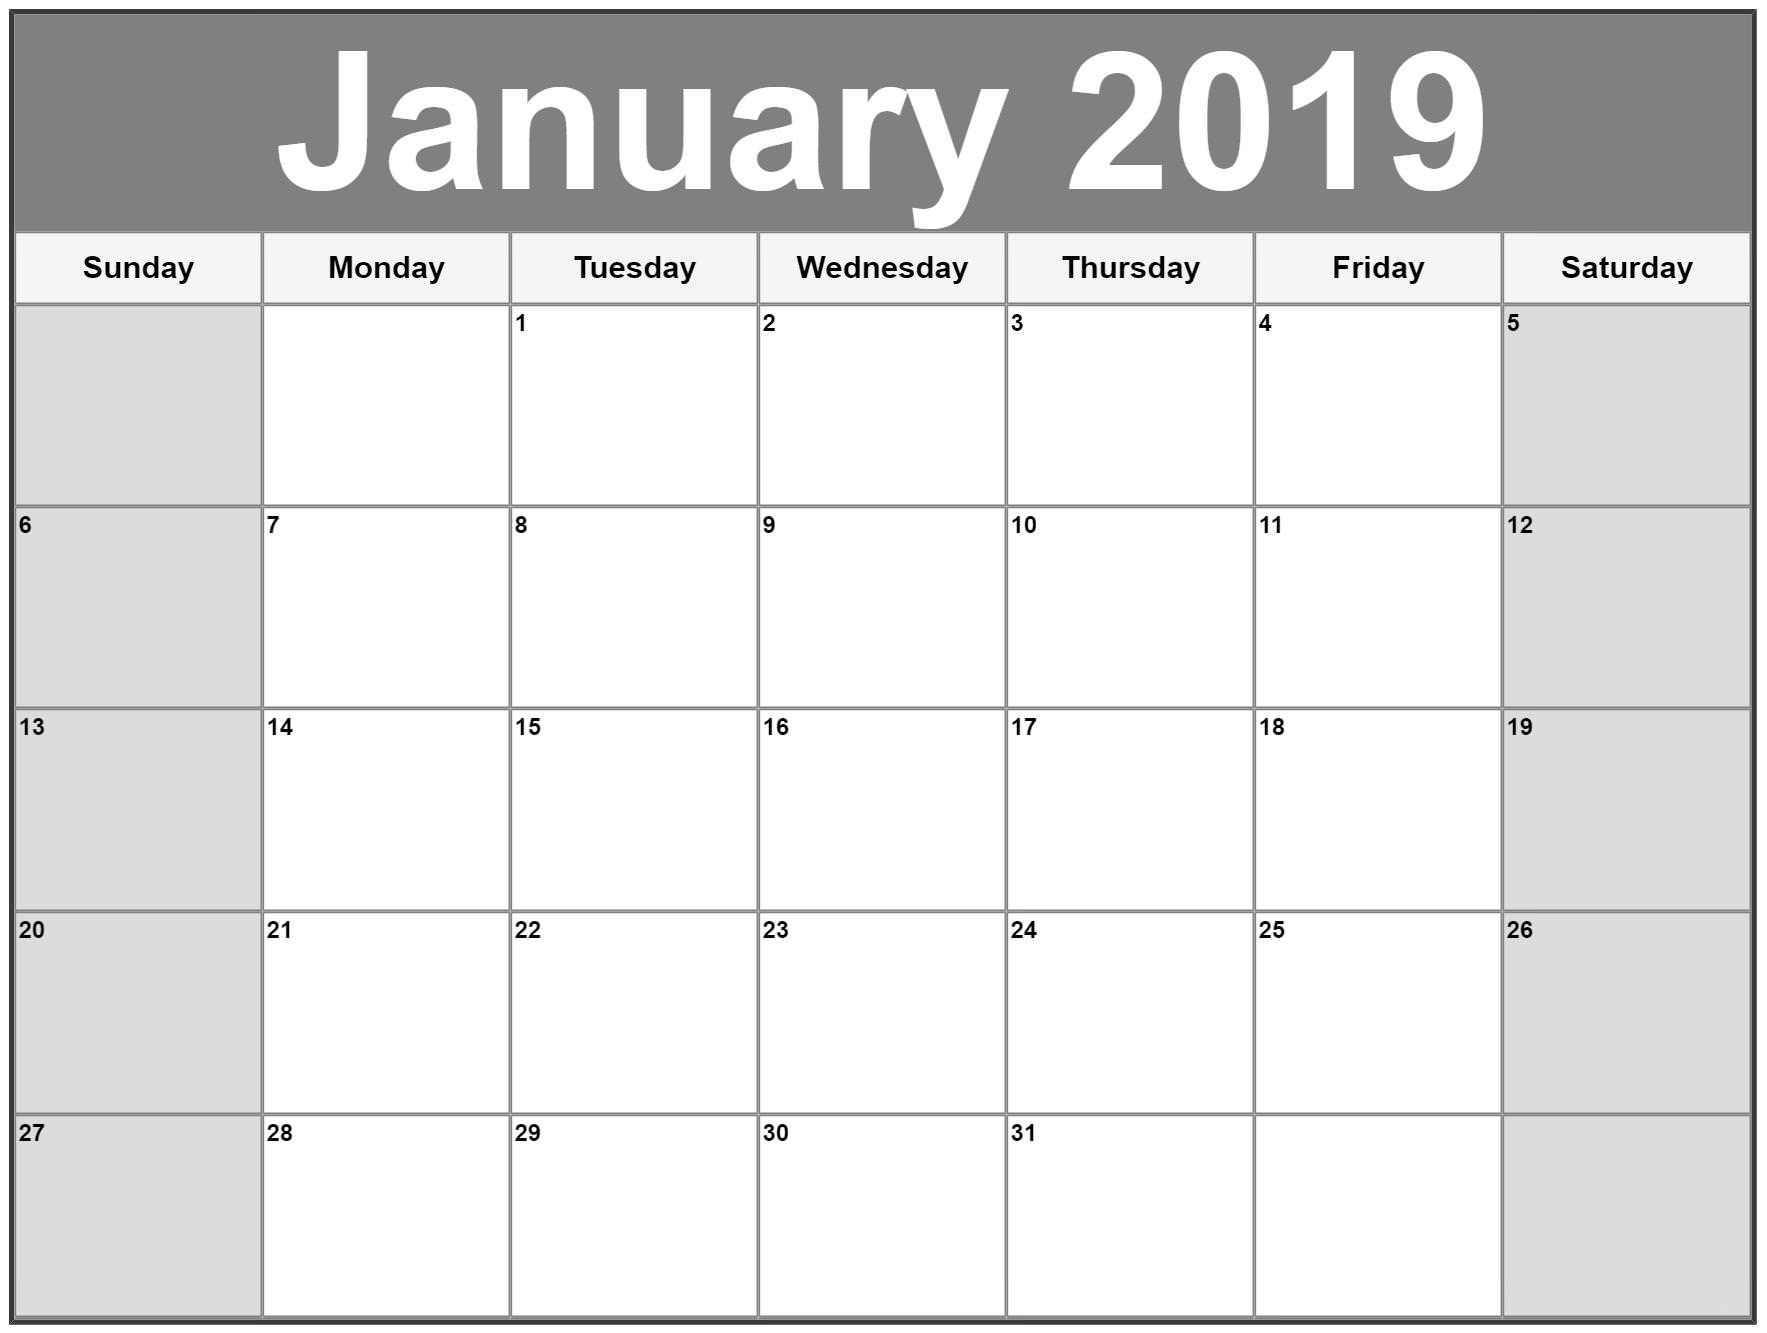 january 2019 calendar canada calendar template printable::January 2019 iPhone Calendar